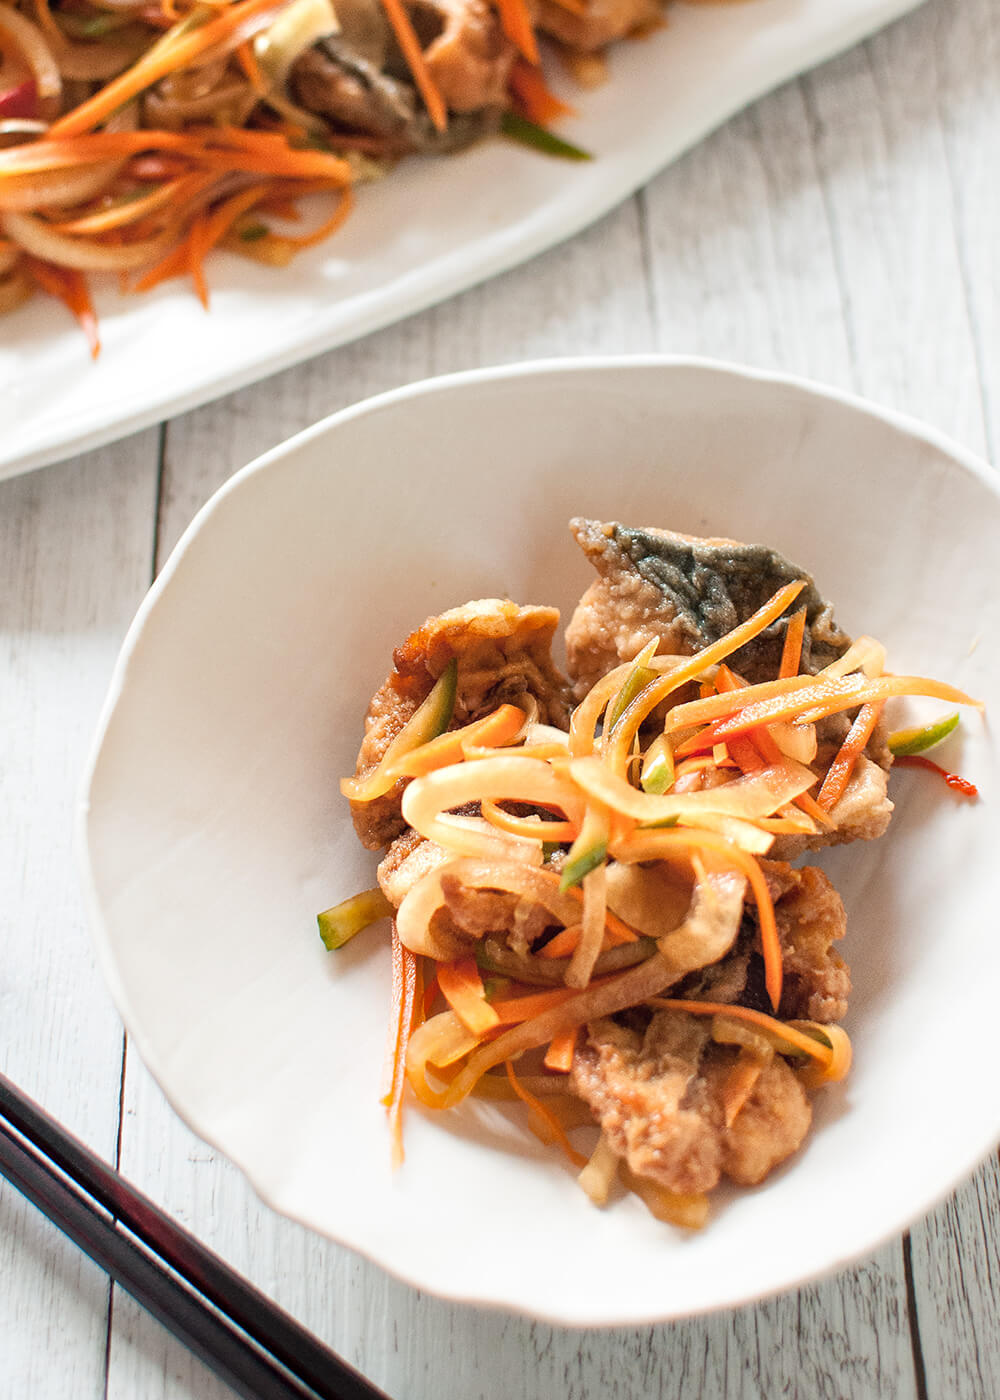 When bite size pieces of deep fried fish are marinated in slightly sweet vinegar and soy based sauce with plenty of shredded vegetables, it transforms the fish into something totally different.